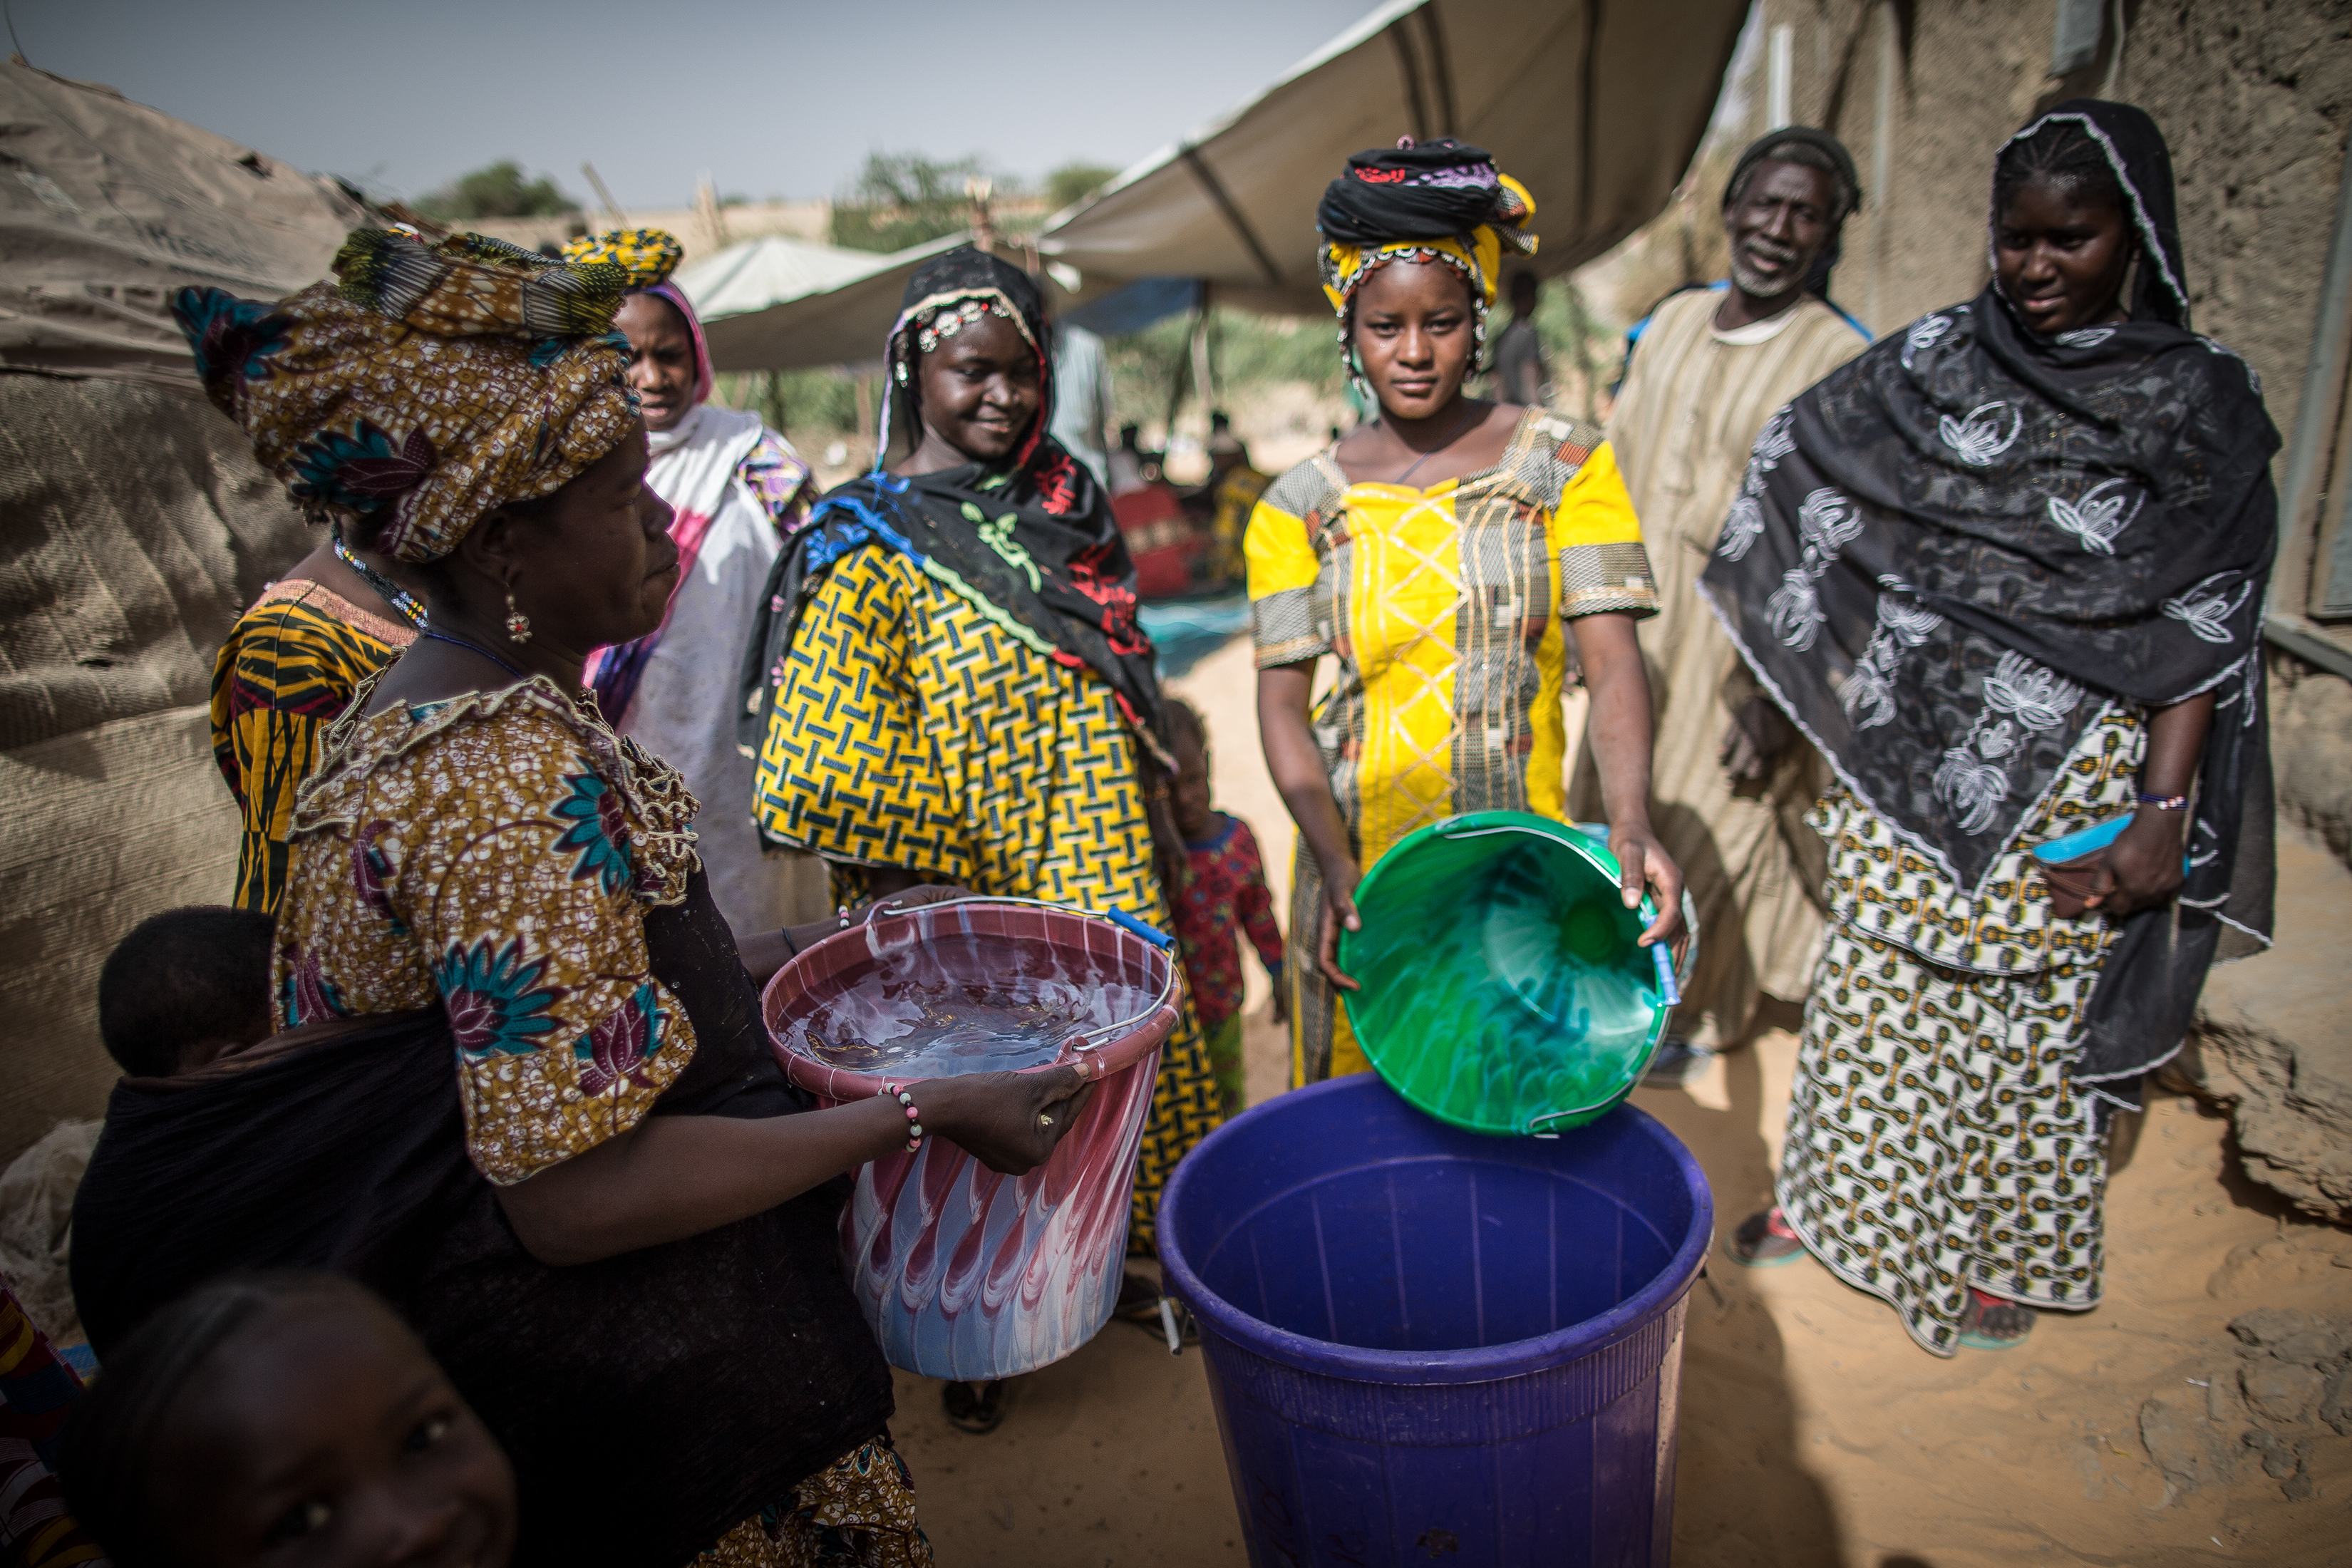 The United Nations Multidimensional Integrated Stabilization Mission in Mali (MINUSMA) completed a community project bringing water to the small villages of Kabara and Tarabangou, near to the city of Timbuktu in northern Mali. The villages had always experience recurrent problems of access to drinking water for the villagers as well as their animals. UN Photo/Harandane Dicko